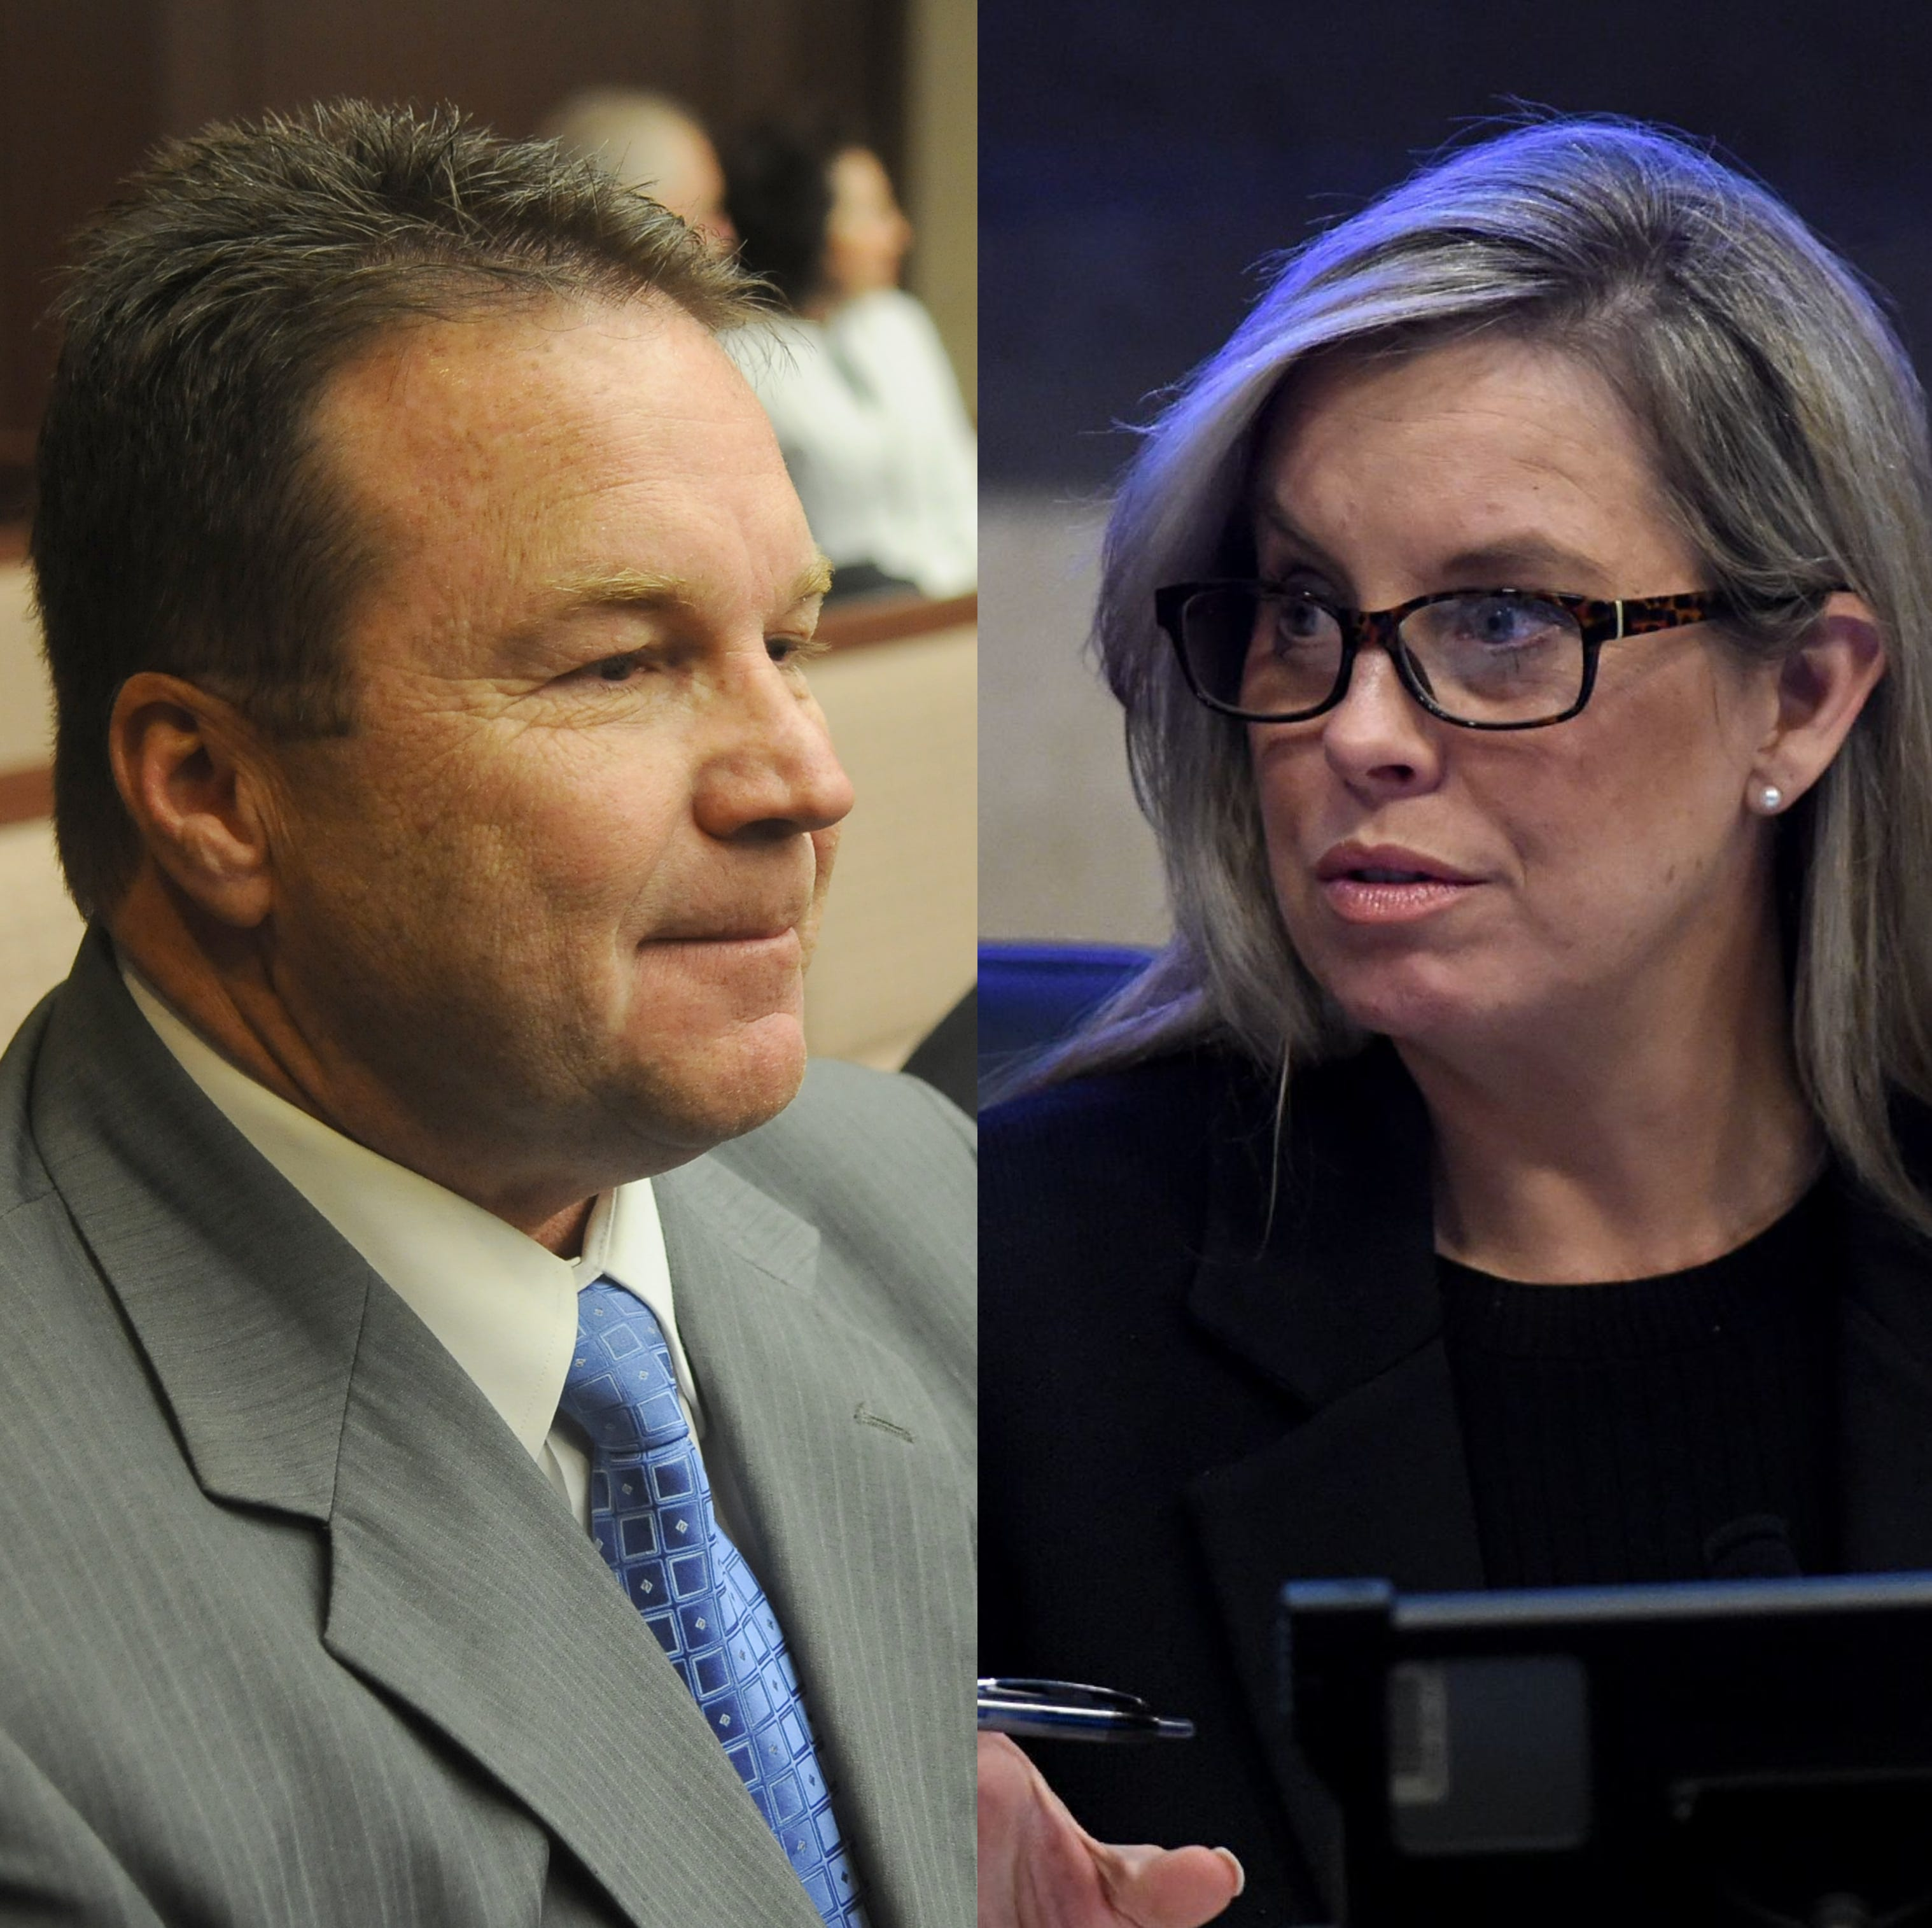 Watch live: Hillary Schieve, Eddie Lorton debate in Reno mayoral race